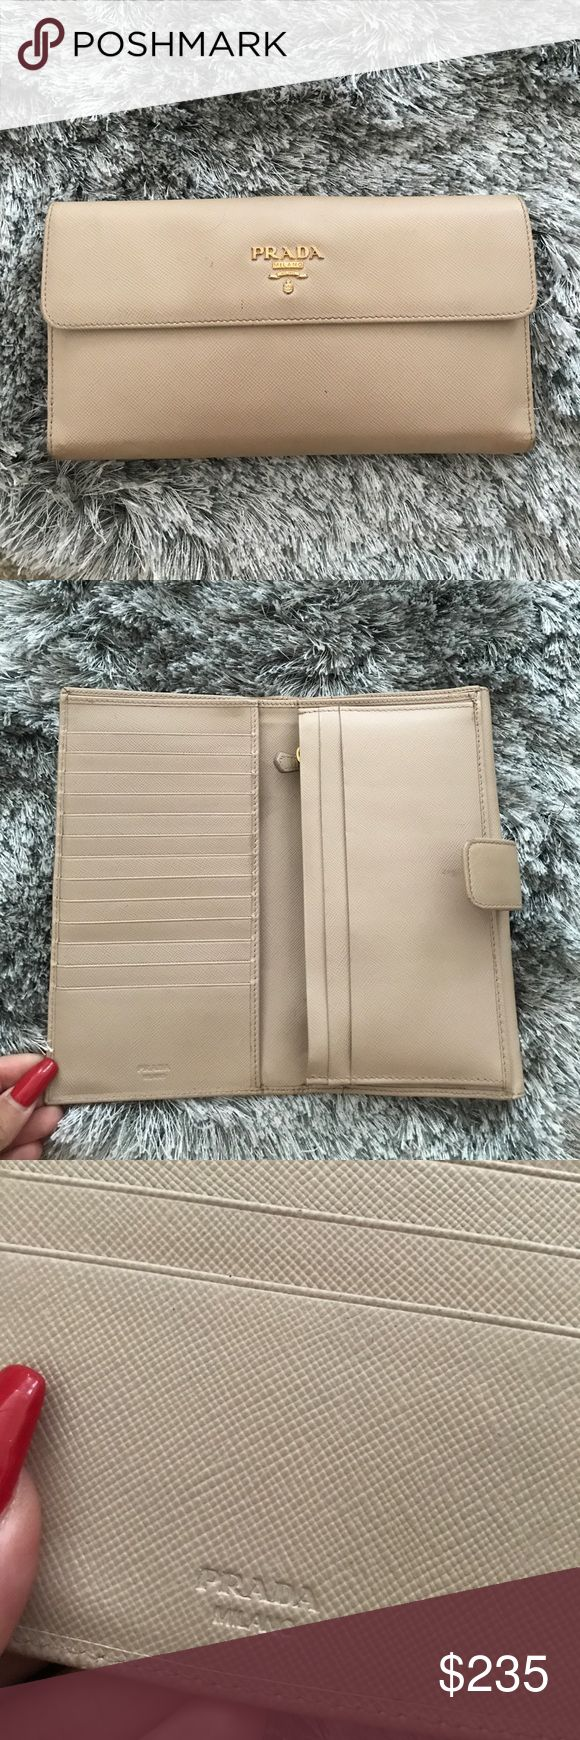 Prada wallet Whole wallet is still in very good condition except that one of the corner the leather has tanned I think from sitting. I haven't used the wallet in a while - $150 through ven. Price is firm Prada Bags Wallets